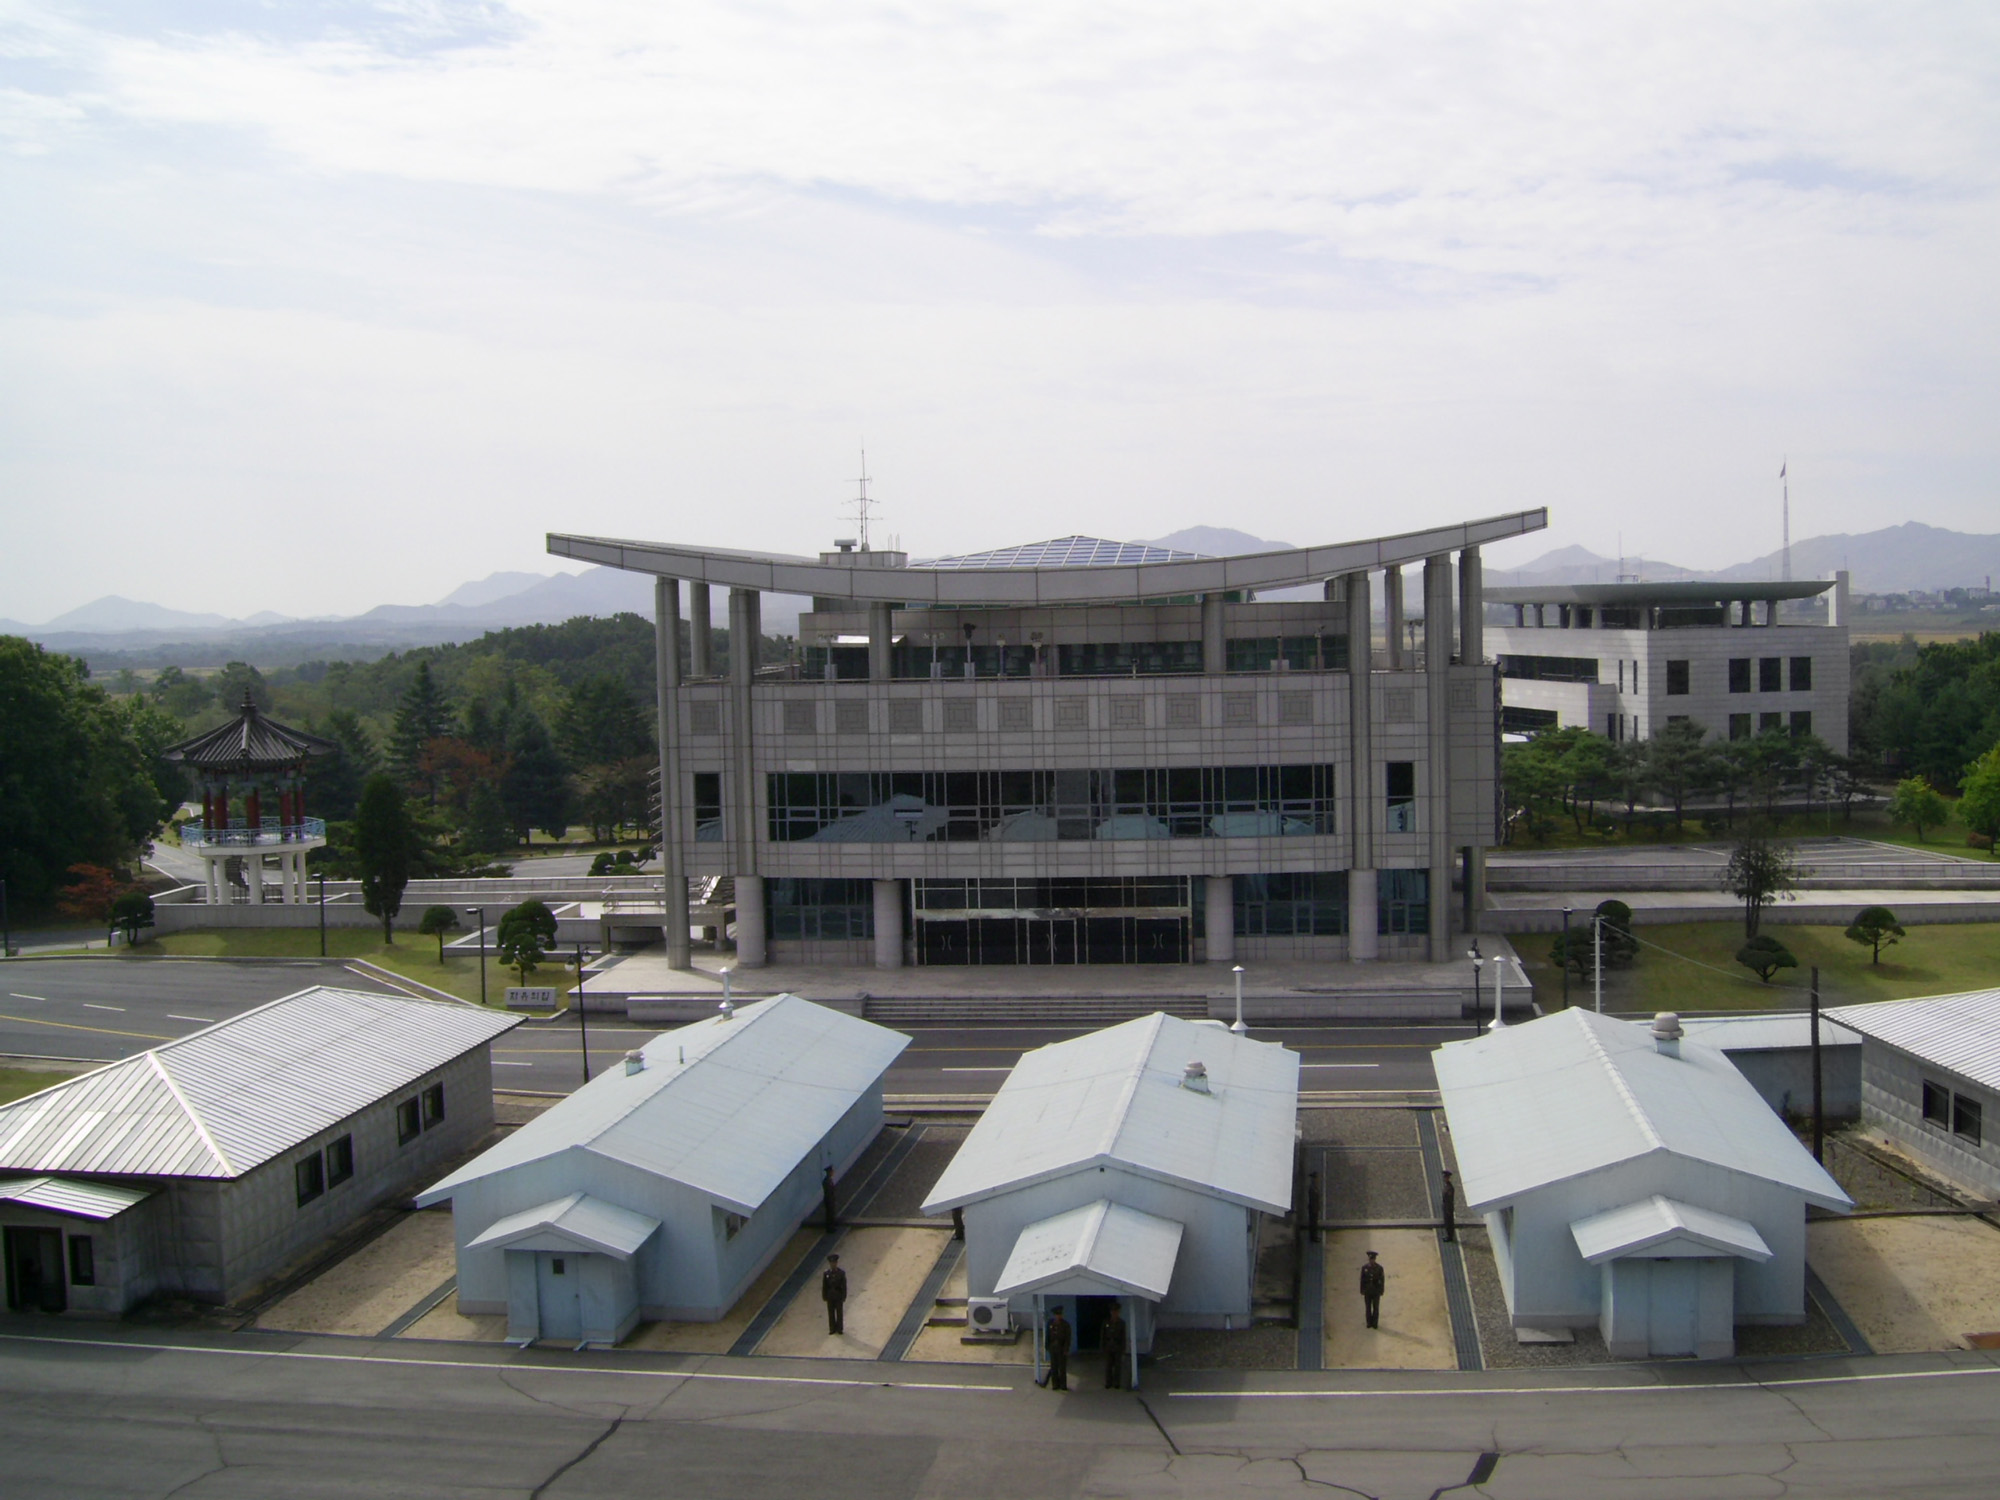 The Joint Security Area in the Demilitarized Zone between the two Koreas, looking toward South Korea from the North. The buildings are collectively called Conference Row. (Photo by Typhoonchaser via Wikimedia Commons)